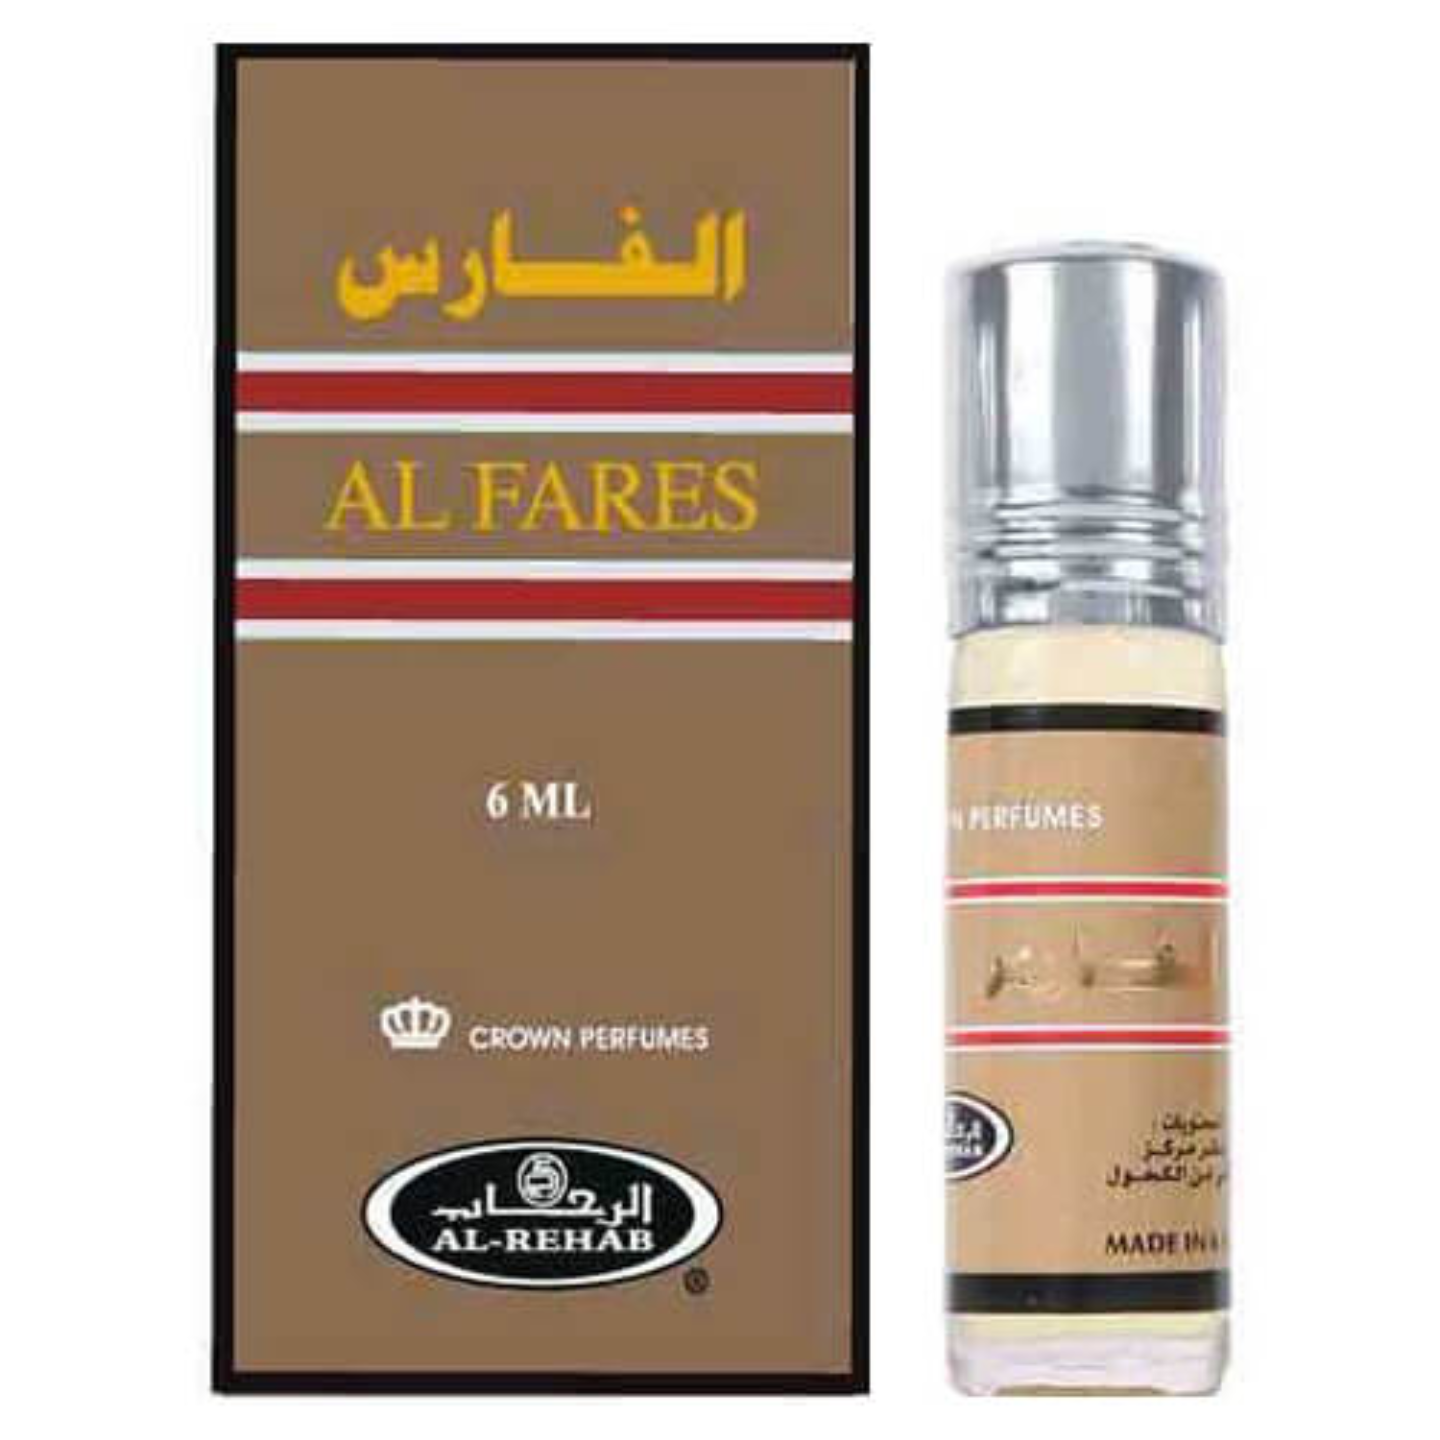 AL FARES ATTAR BY AL REHAB